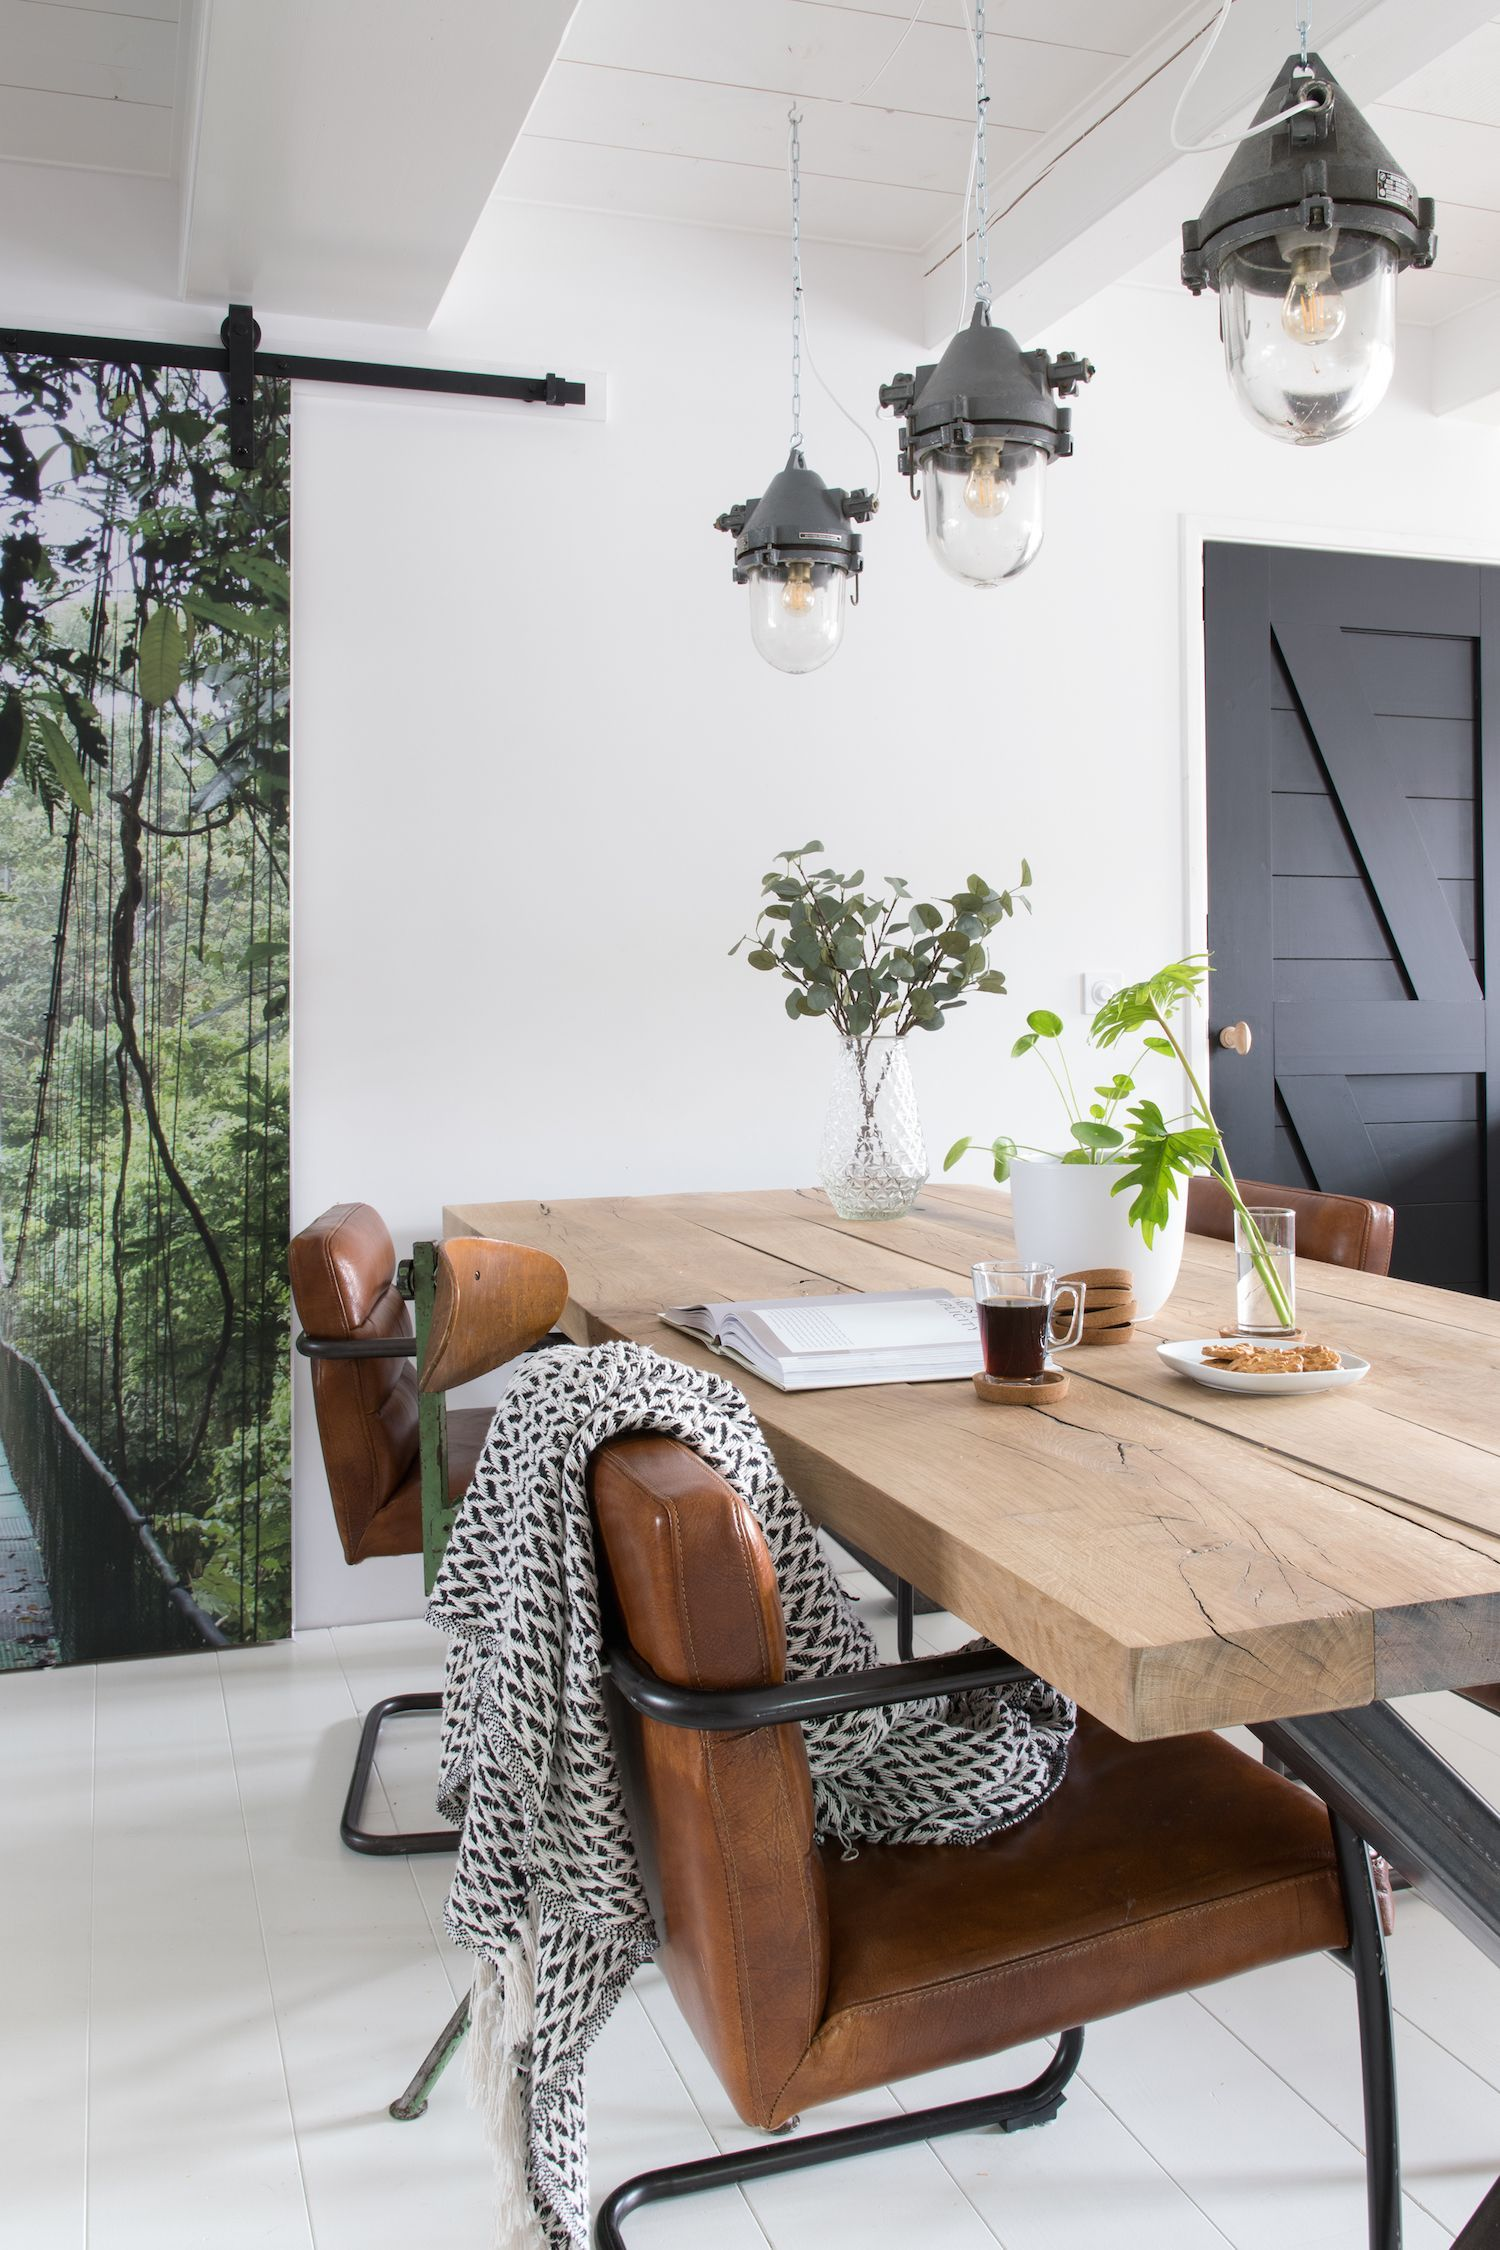 The Vintage Industrial Home Tips You\'ve Been Waiting For ...